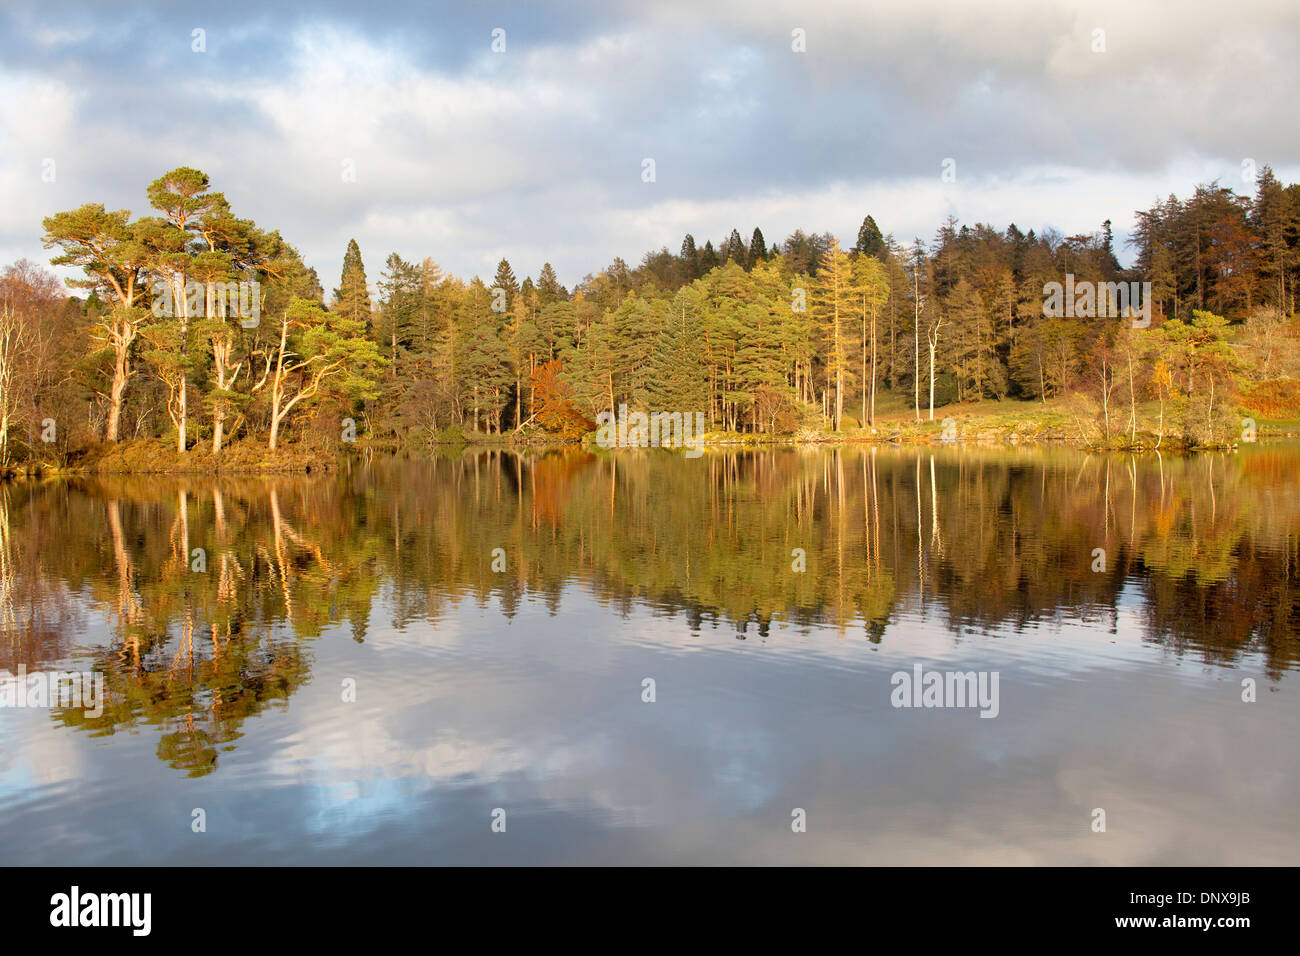 View of trees showing autumn colour reflected in water in evening light at Tarn Howes, Coniston, Lake District, Cumbria, England - Stock Image